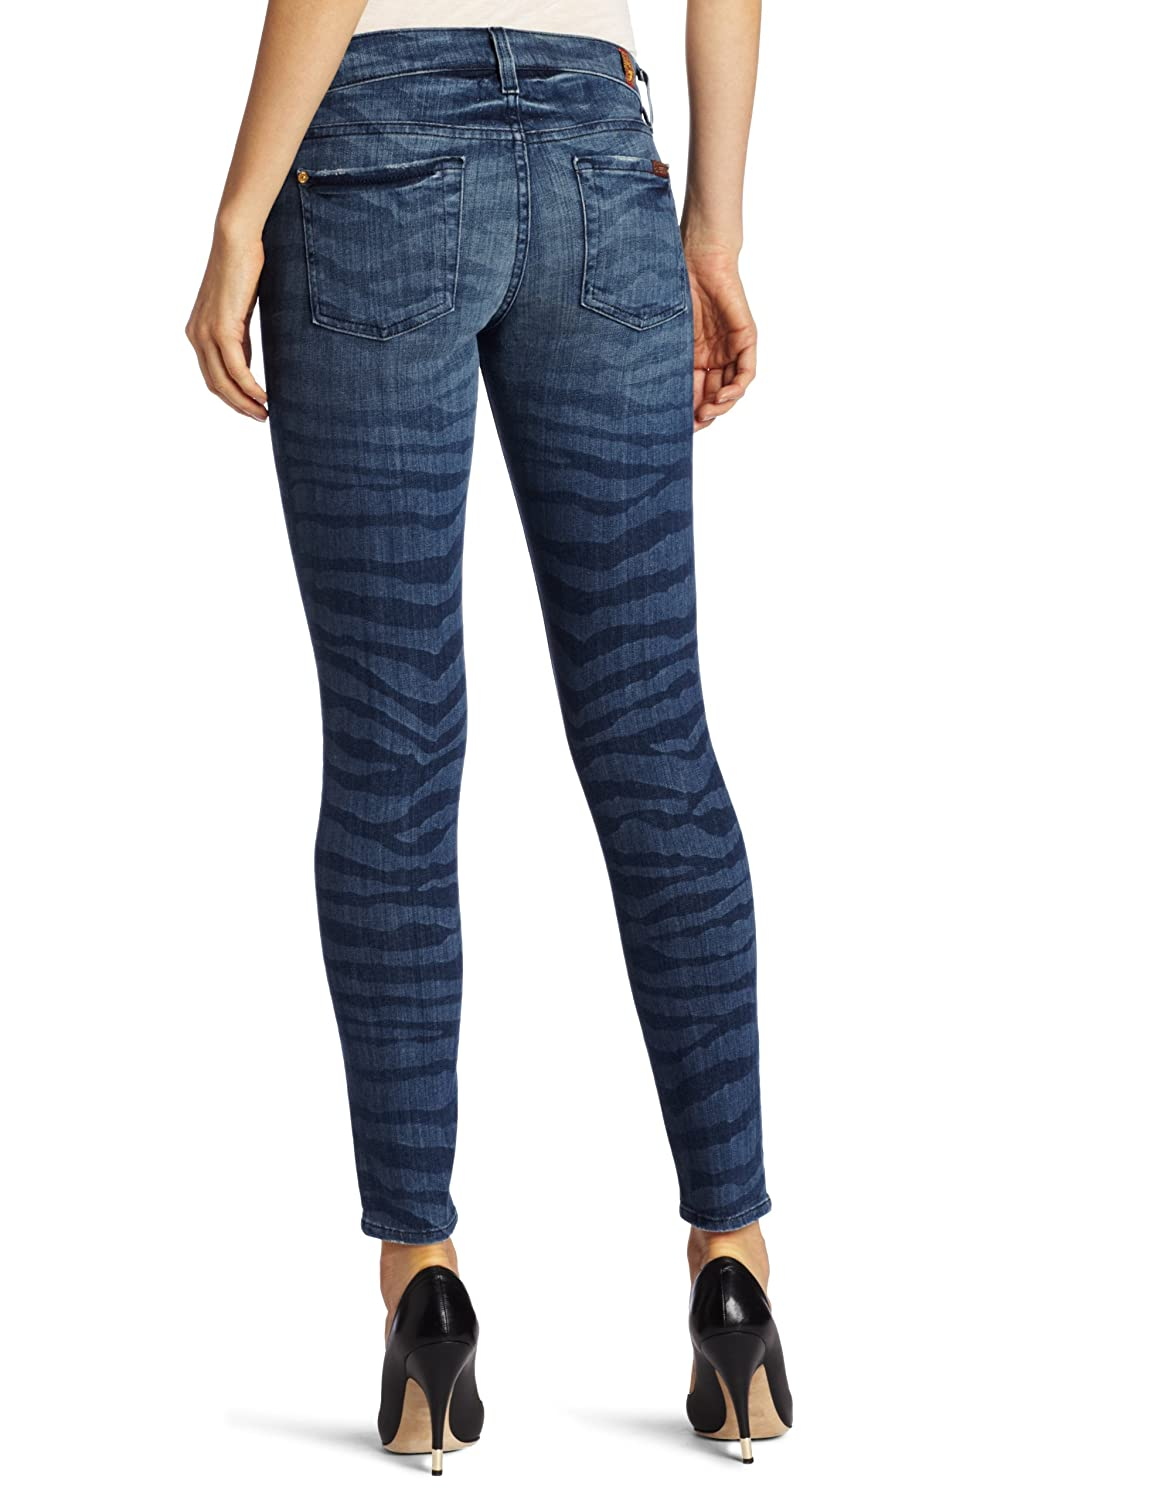 7 For All Mankind Womens Skinny Dark Wash Jean Ankle Pant